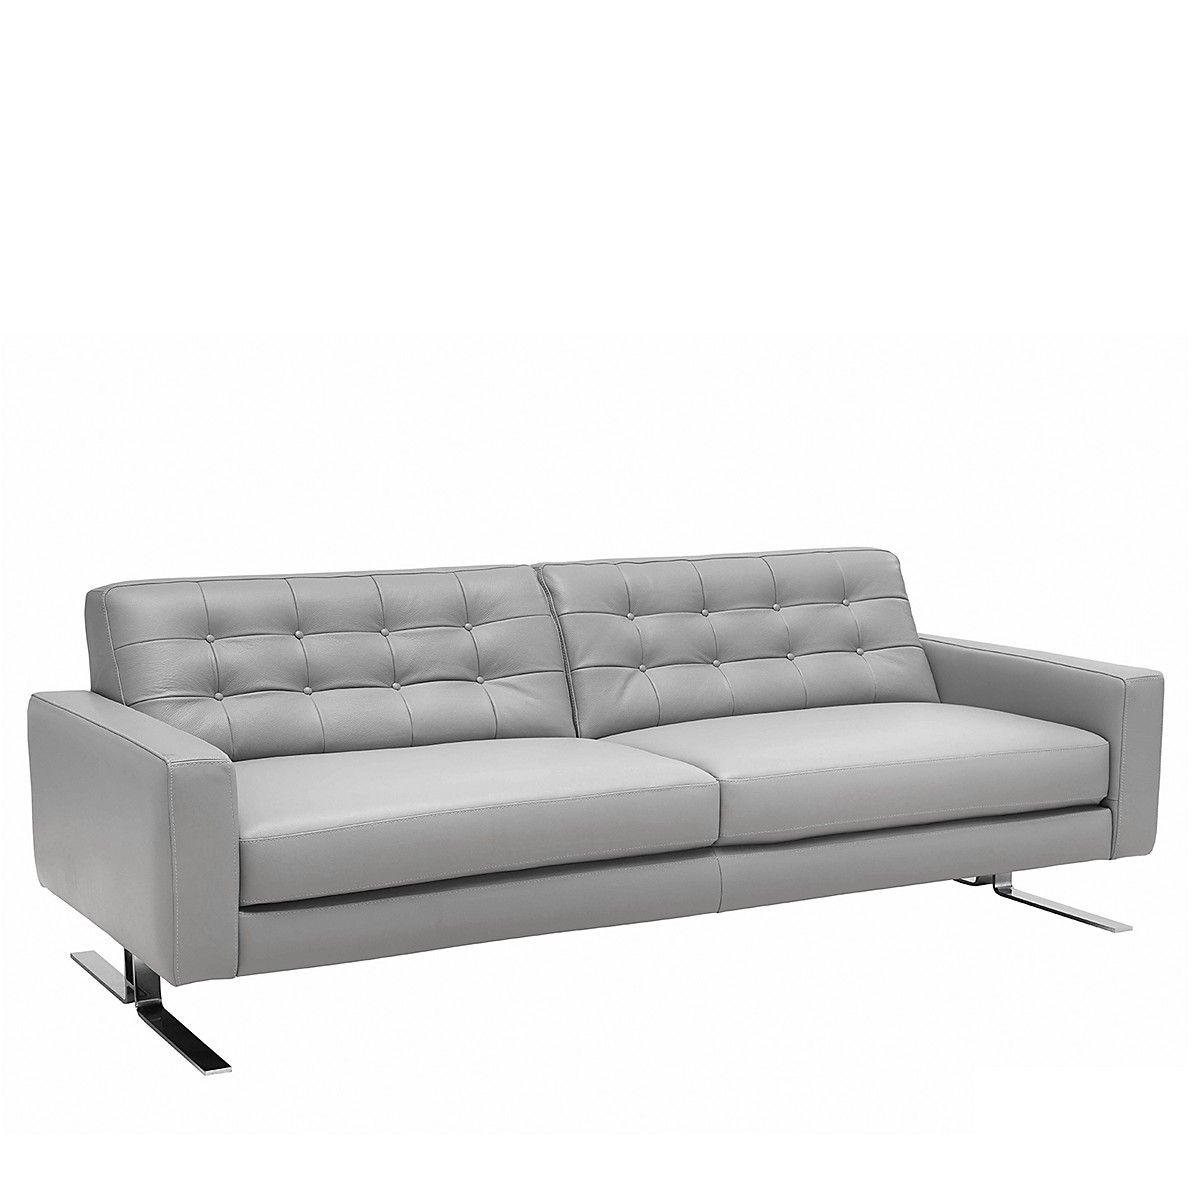 Alex Sofa Montauk Sectional Sofas Fabric And Leather Pin By Fooch On Chateau D 39ax Pinterest Positano